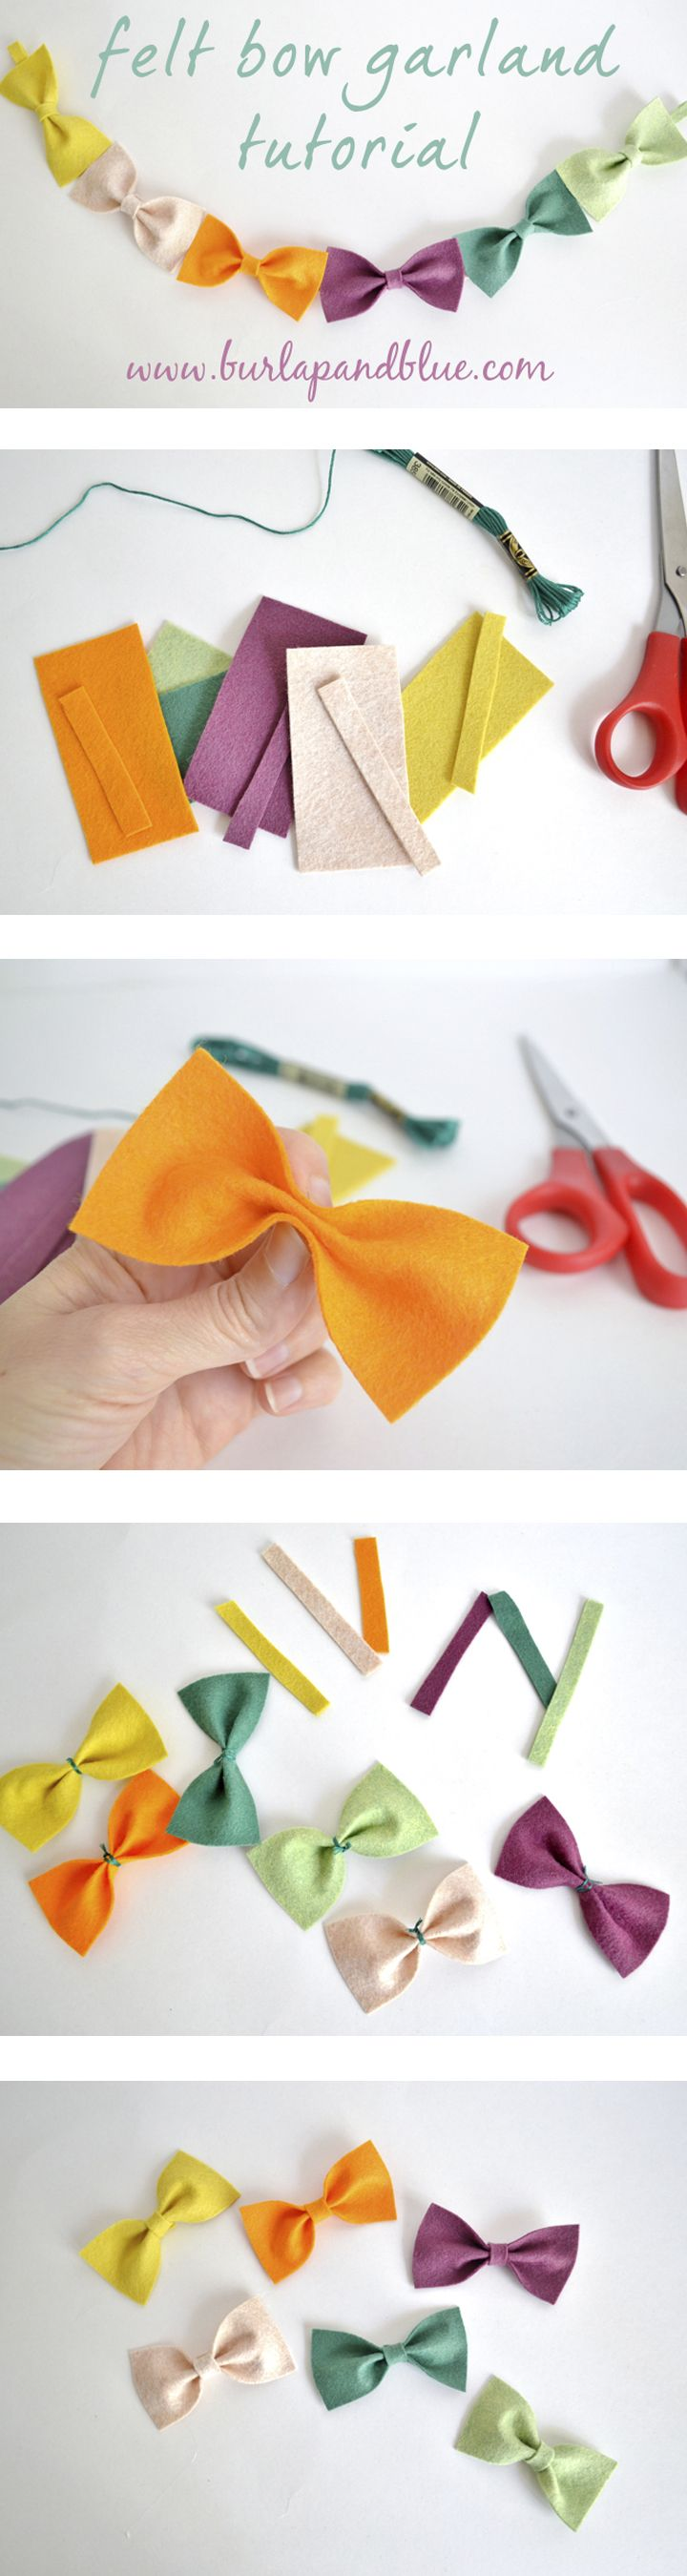 how to make felt bows...and turn them into a cute garland!